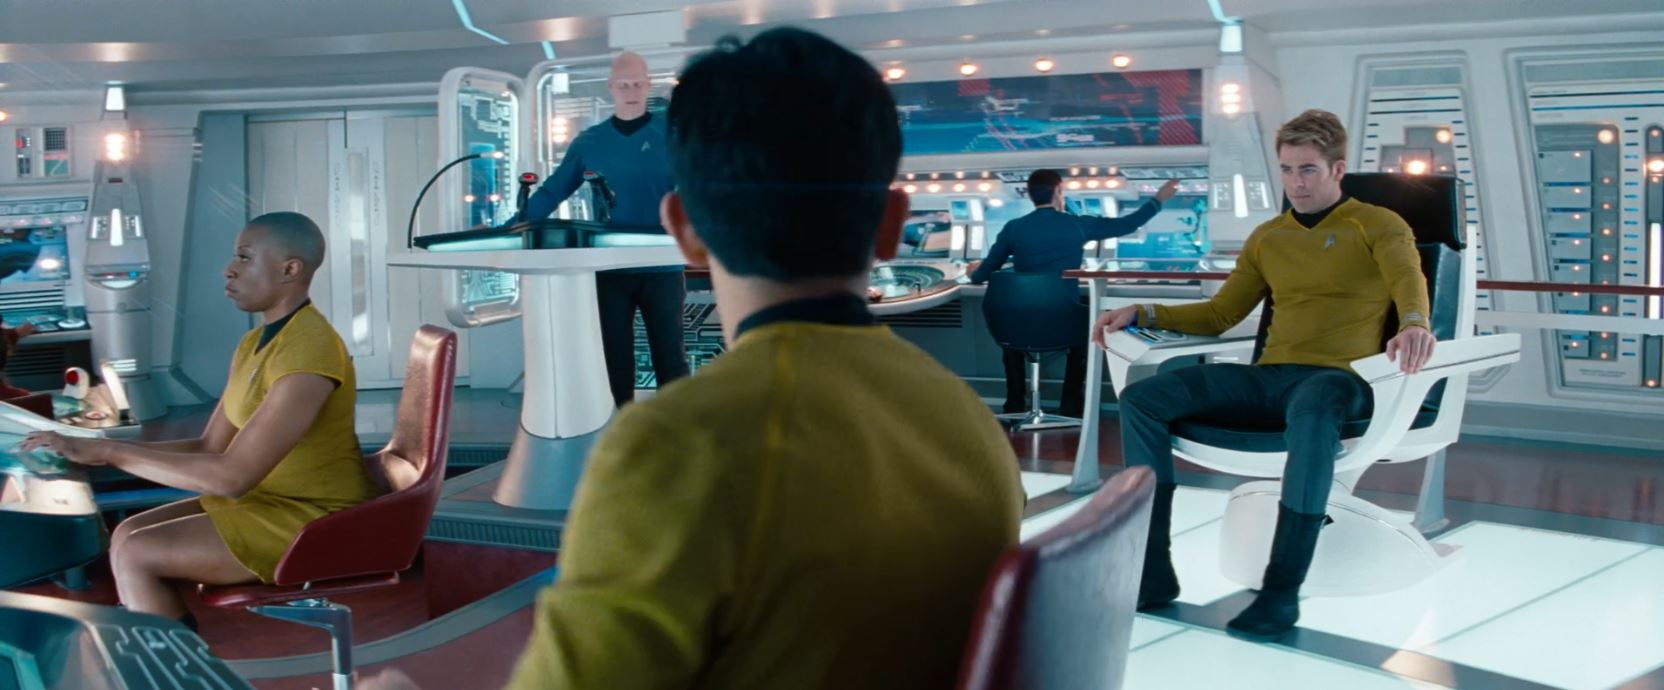 New Star Trek TV series - woman in skirt uniform